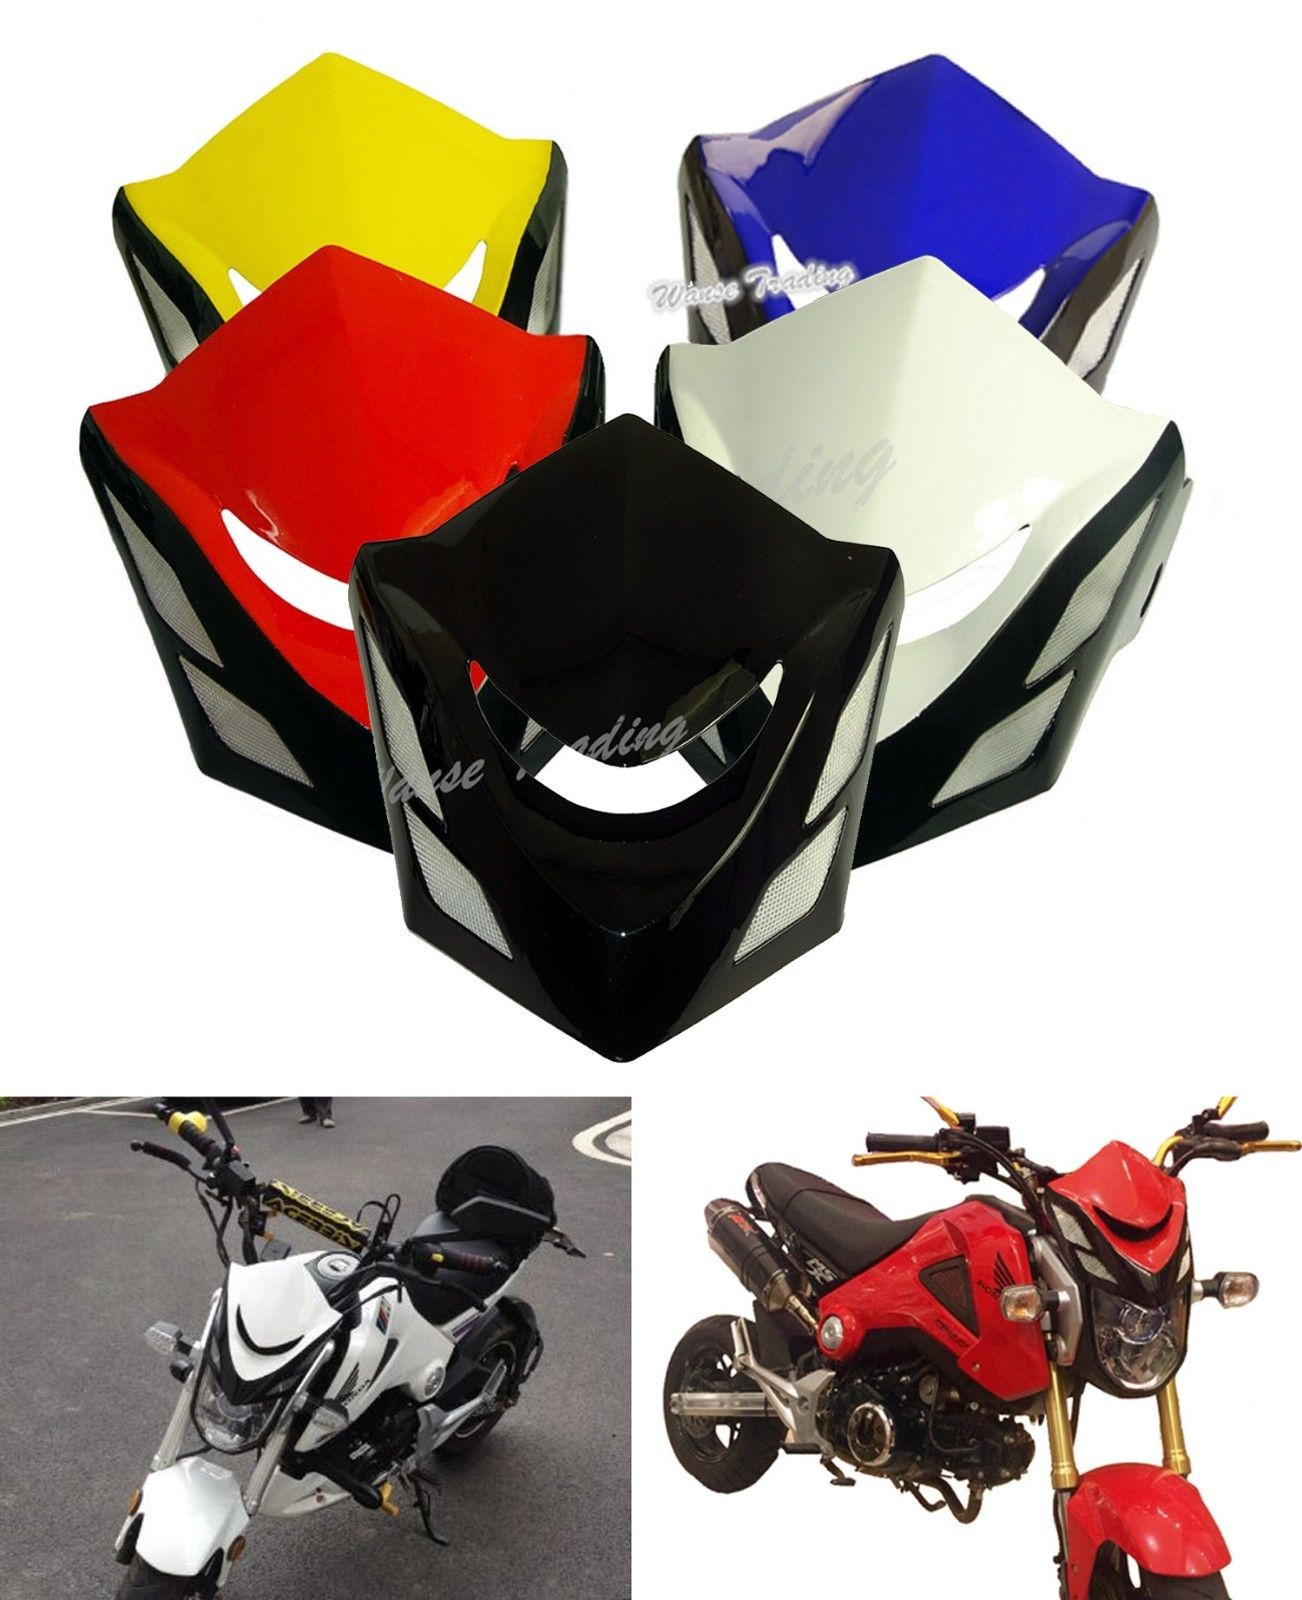 Motorcycle Front Upper Cowl Headlight Headlamp Head Lamp Cover Wind Shield Screen For HONDA Grom MSX 125 MSX125 2013 2014 2015 geely sc7 sl car front headlight head light transparent cover